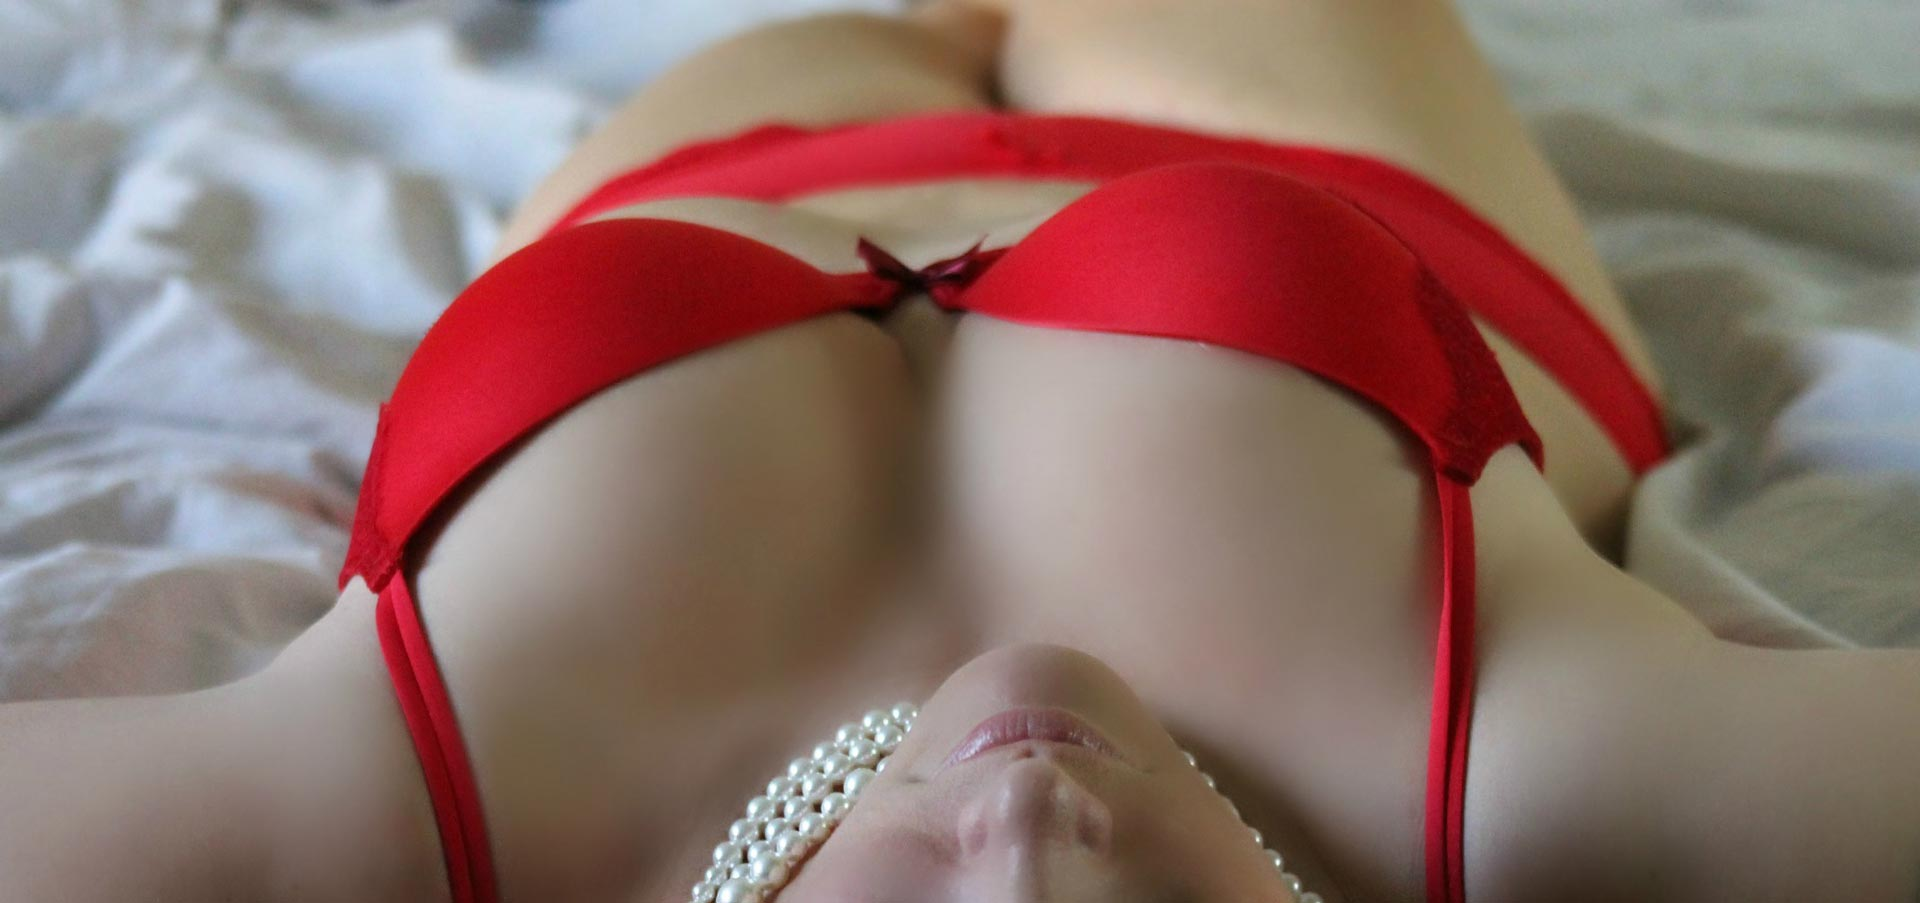 woman with pearl necklace wearing red lingere lying back on white sheets